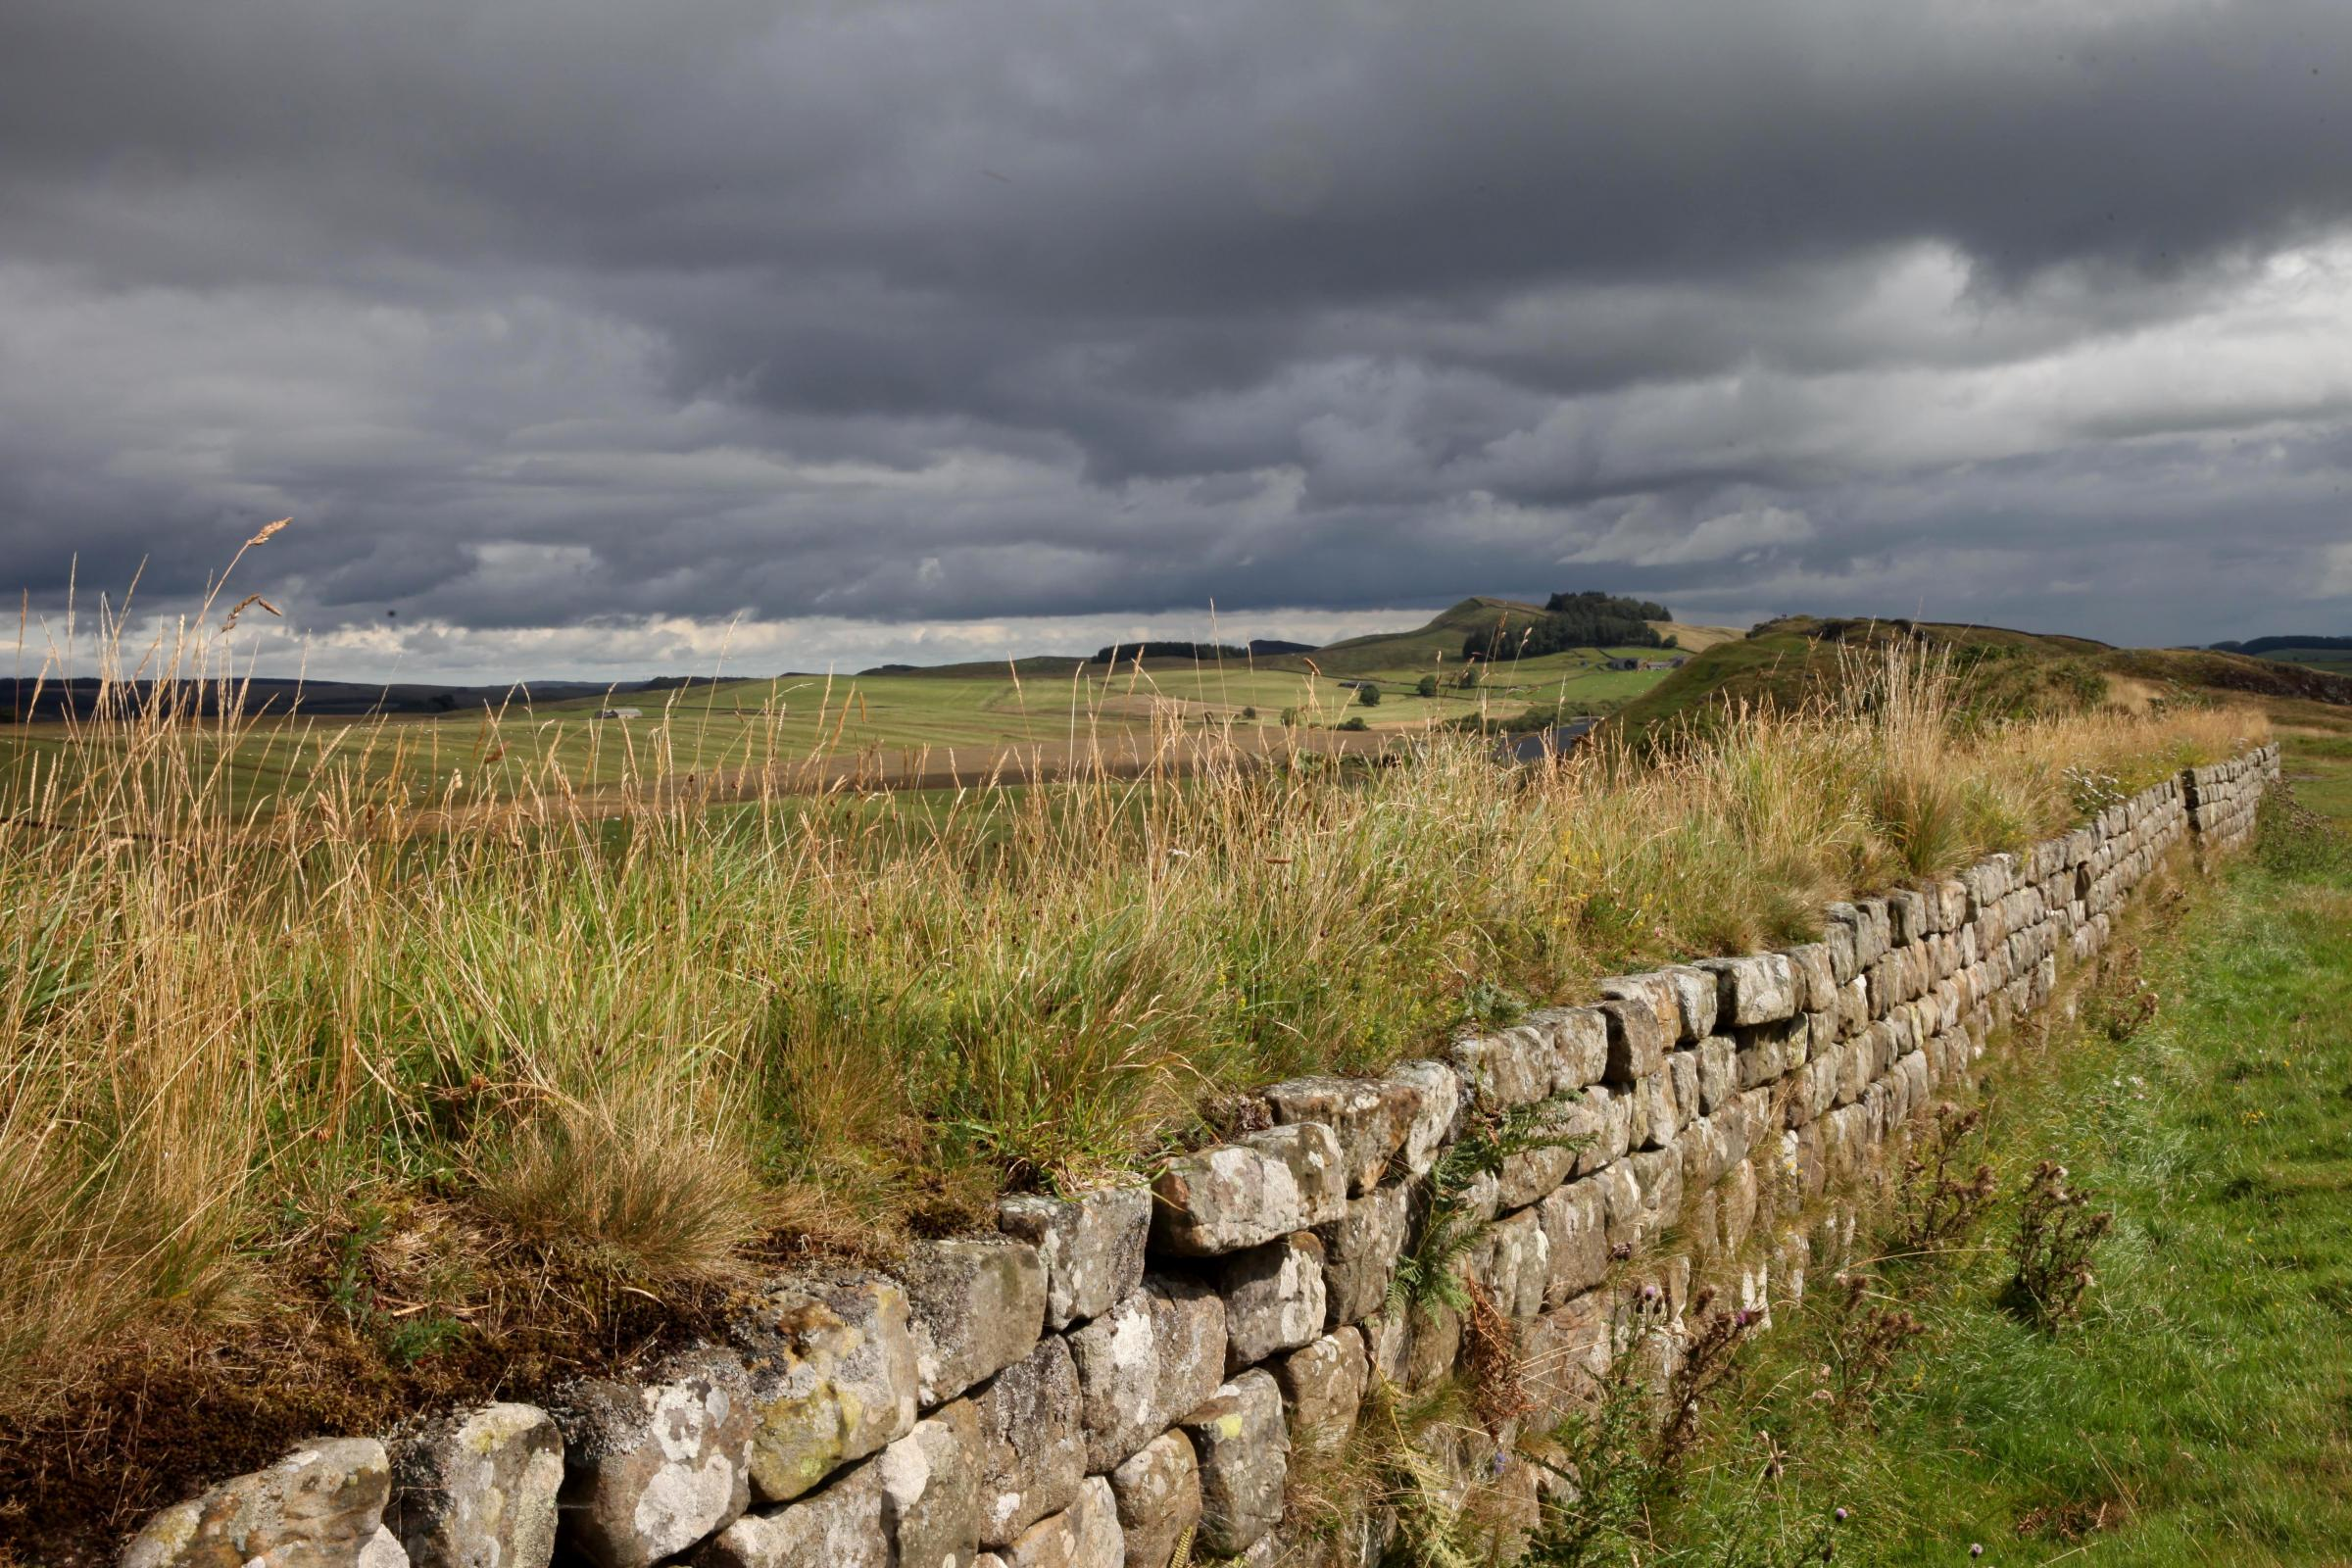 Lottery money will be spent on protecting Hadrian's Wall for future generations. Photo: K371514.